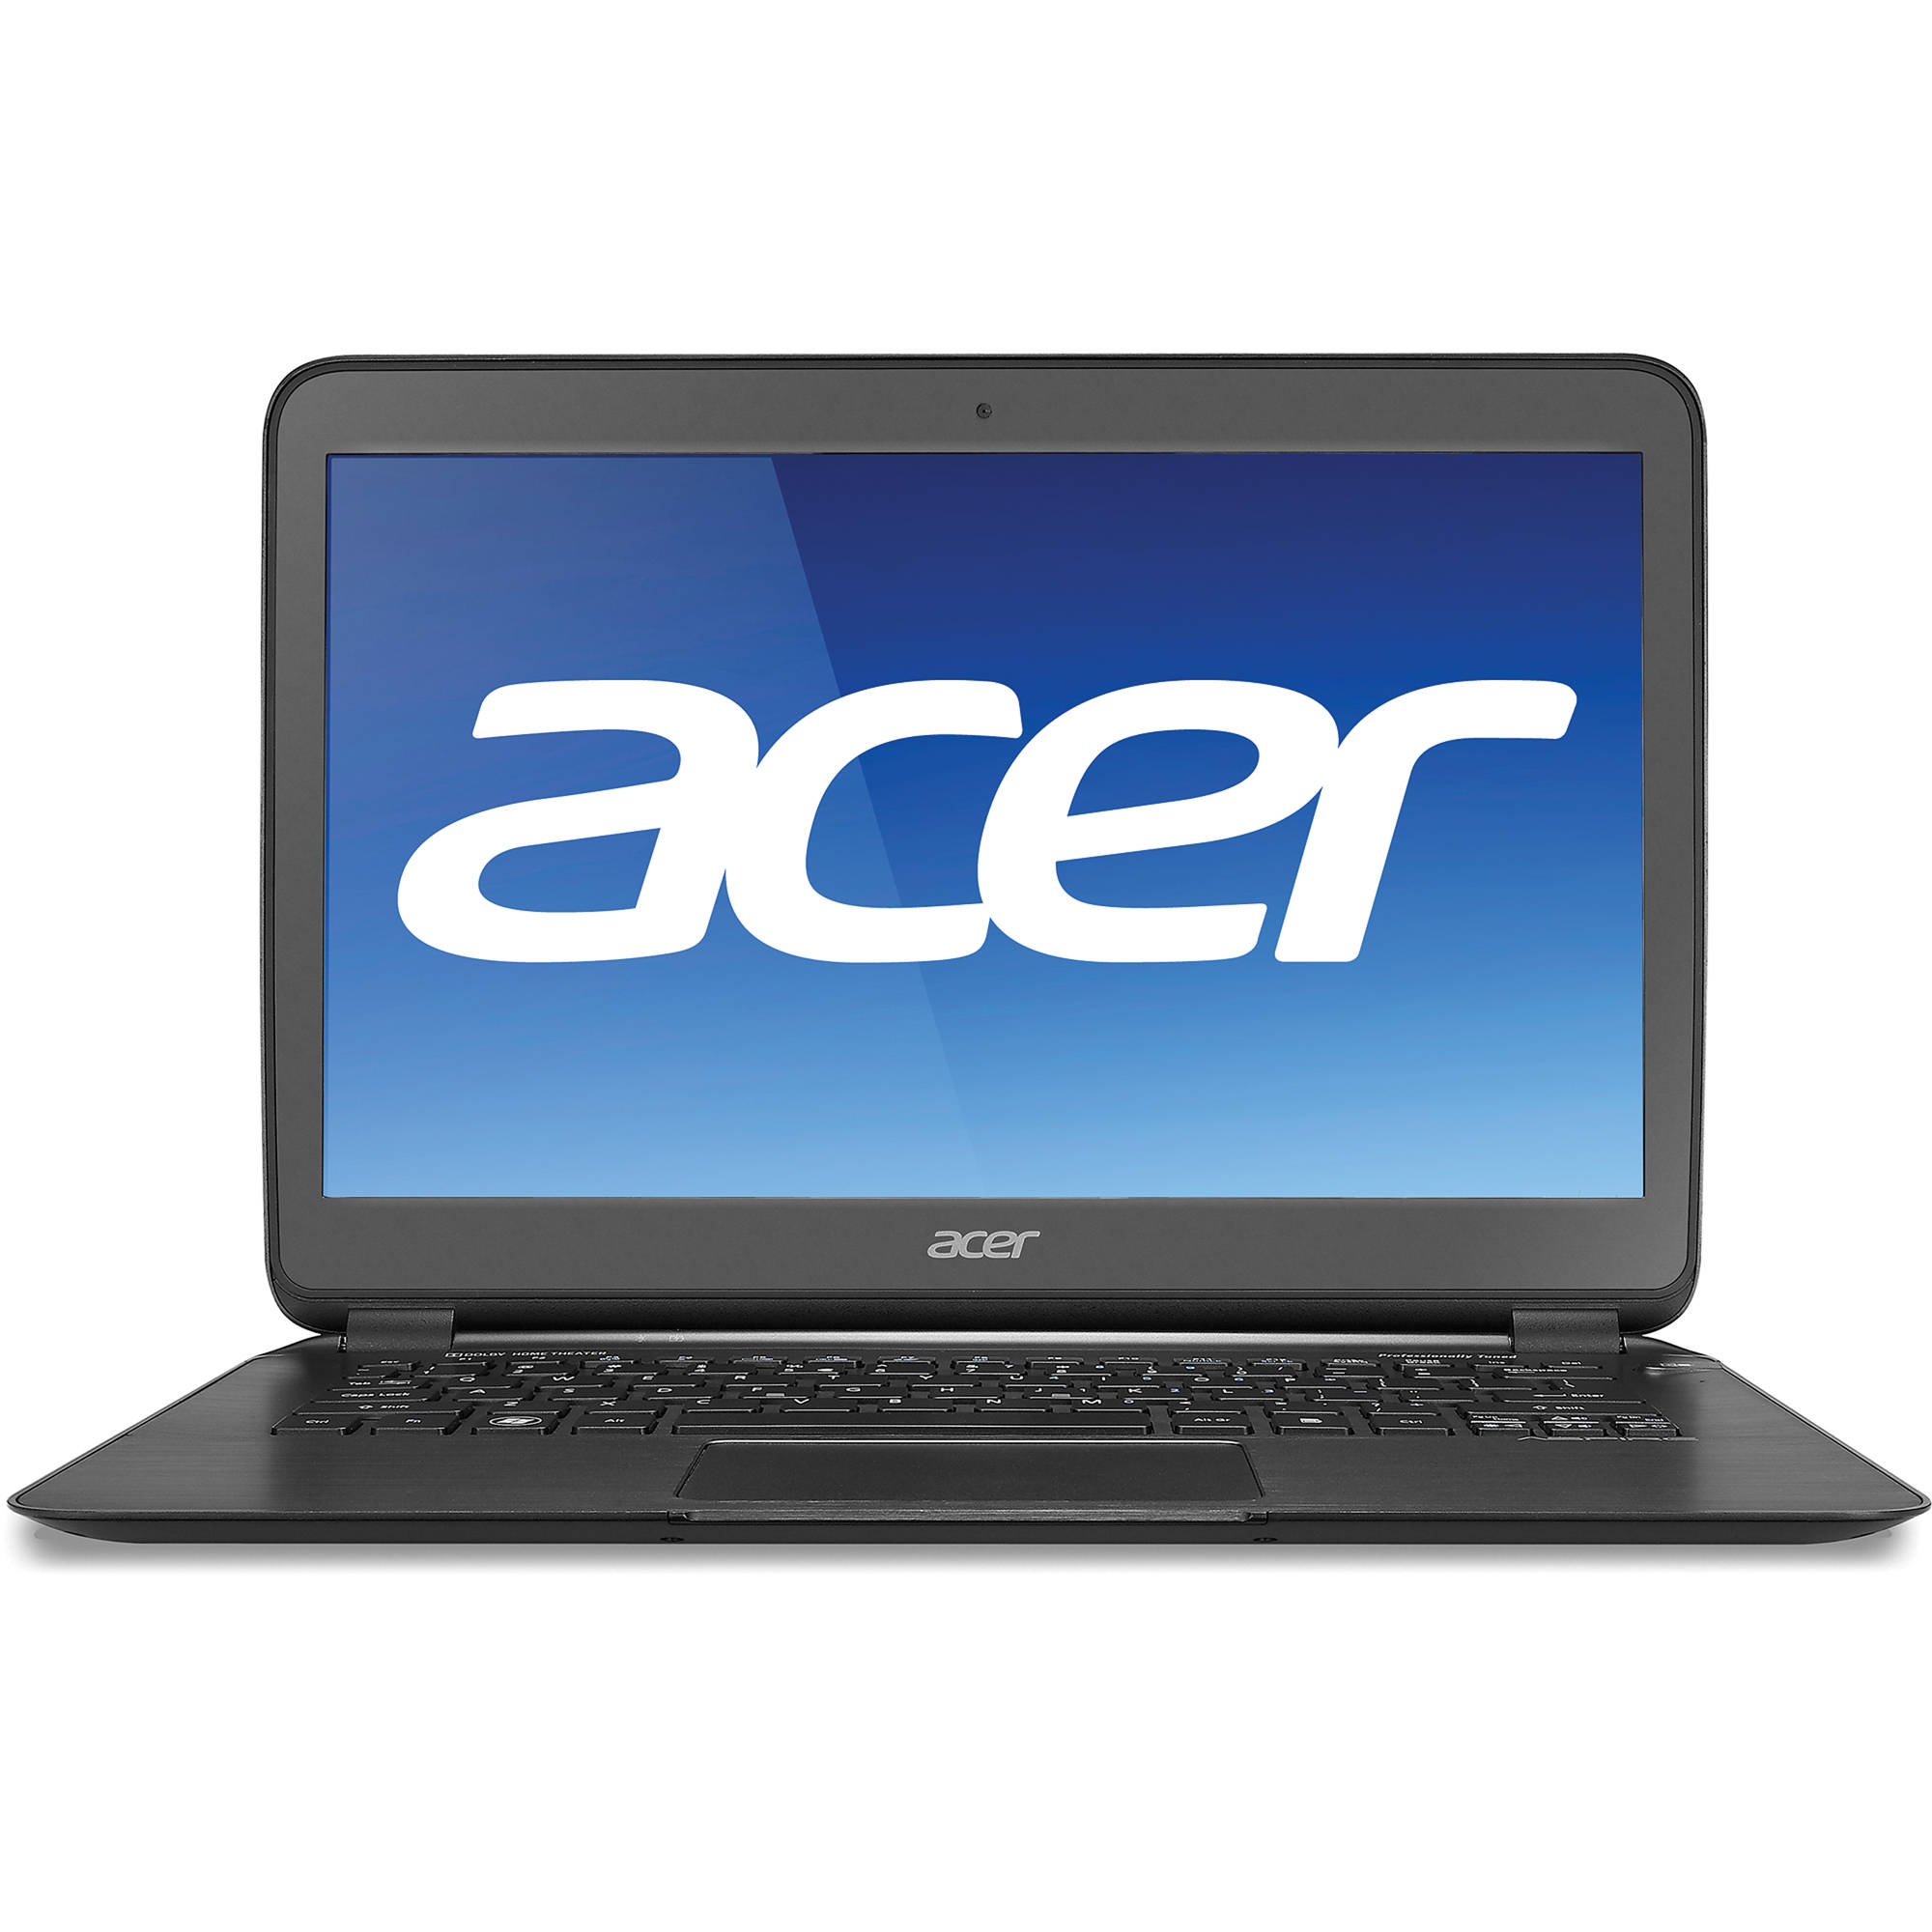 ACER ASPIRE S5-391 INTEL GRAPHICS DRIVER FOR WINDOWS 8